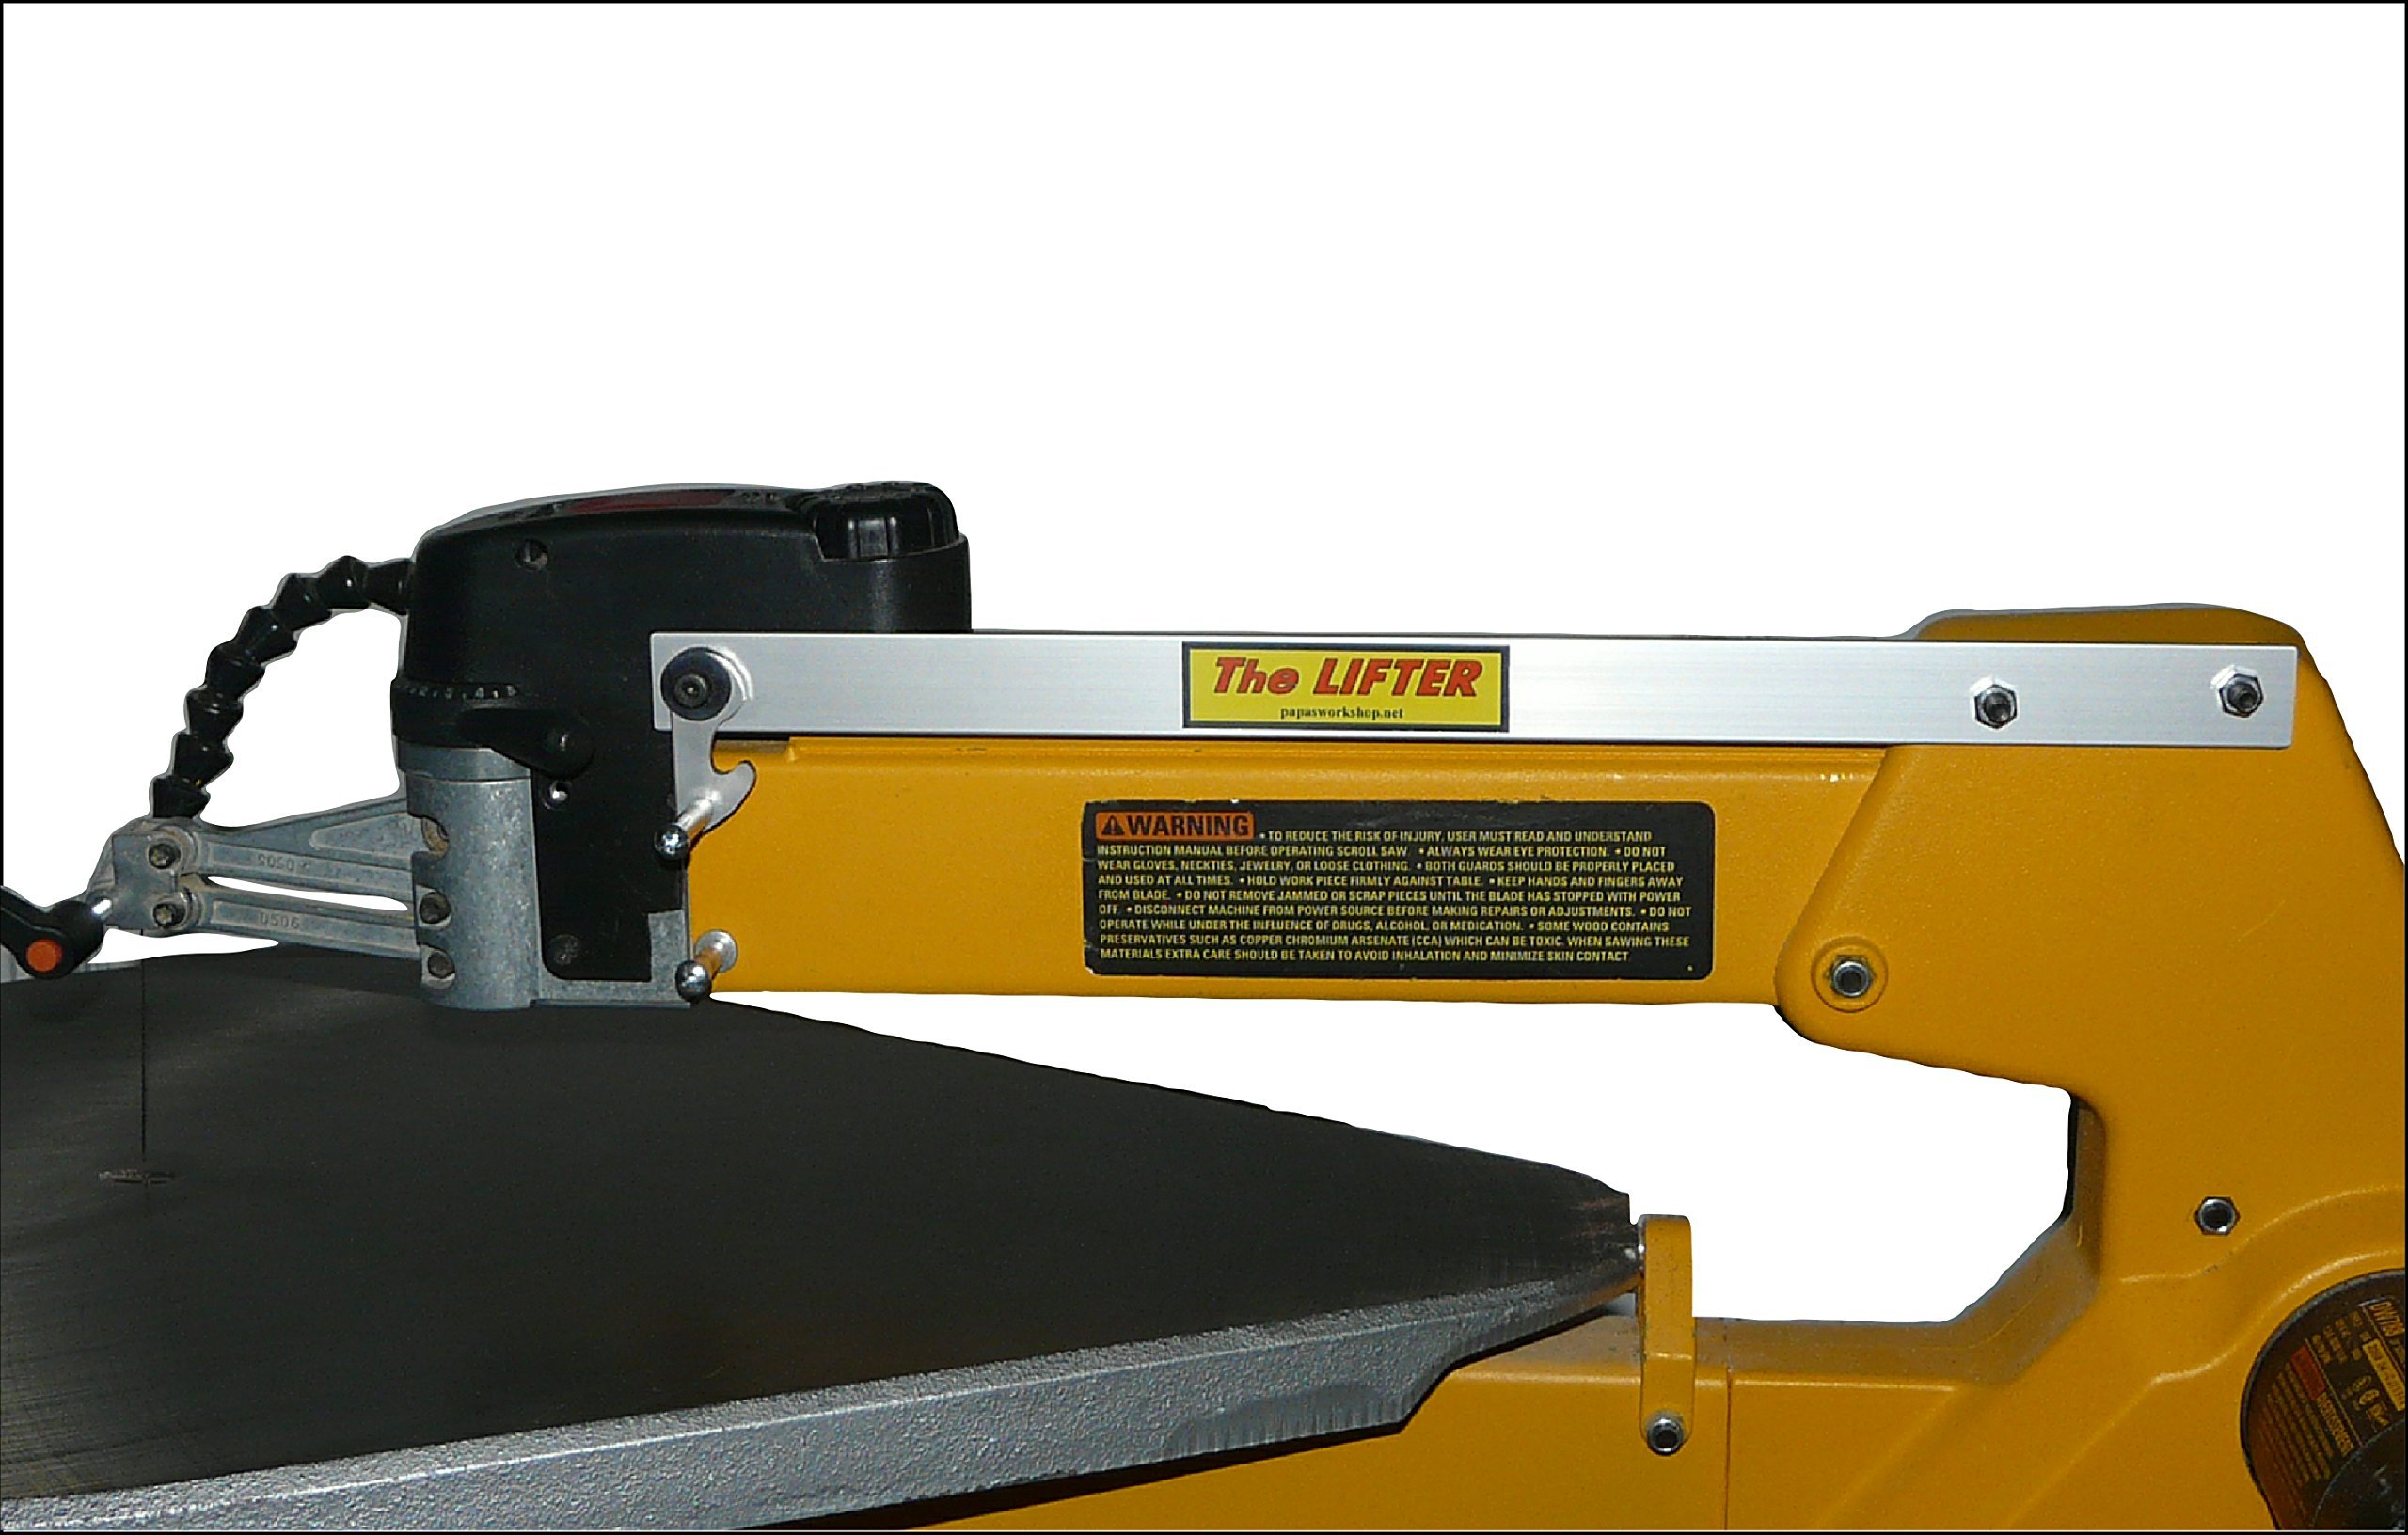 Papa's Workshop The Scroll Saw Lifter - for the Dewalt 788 and Delta 40-690 Scroll Saws by Papa's Workshop